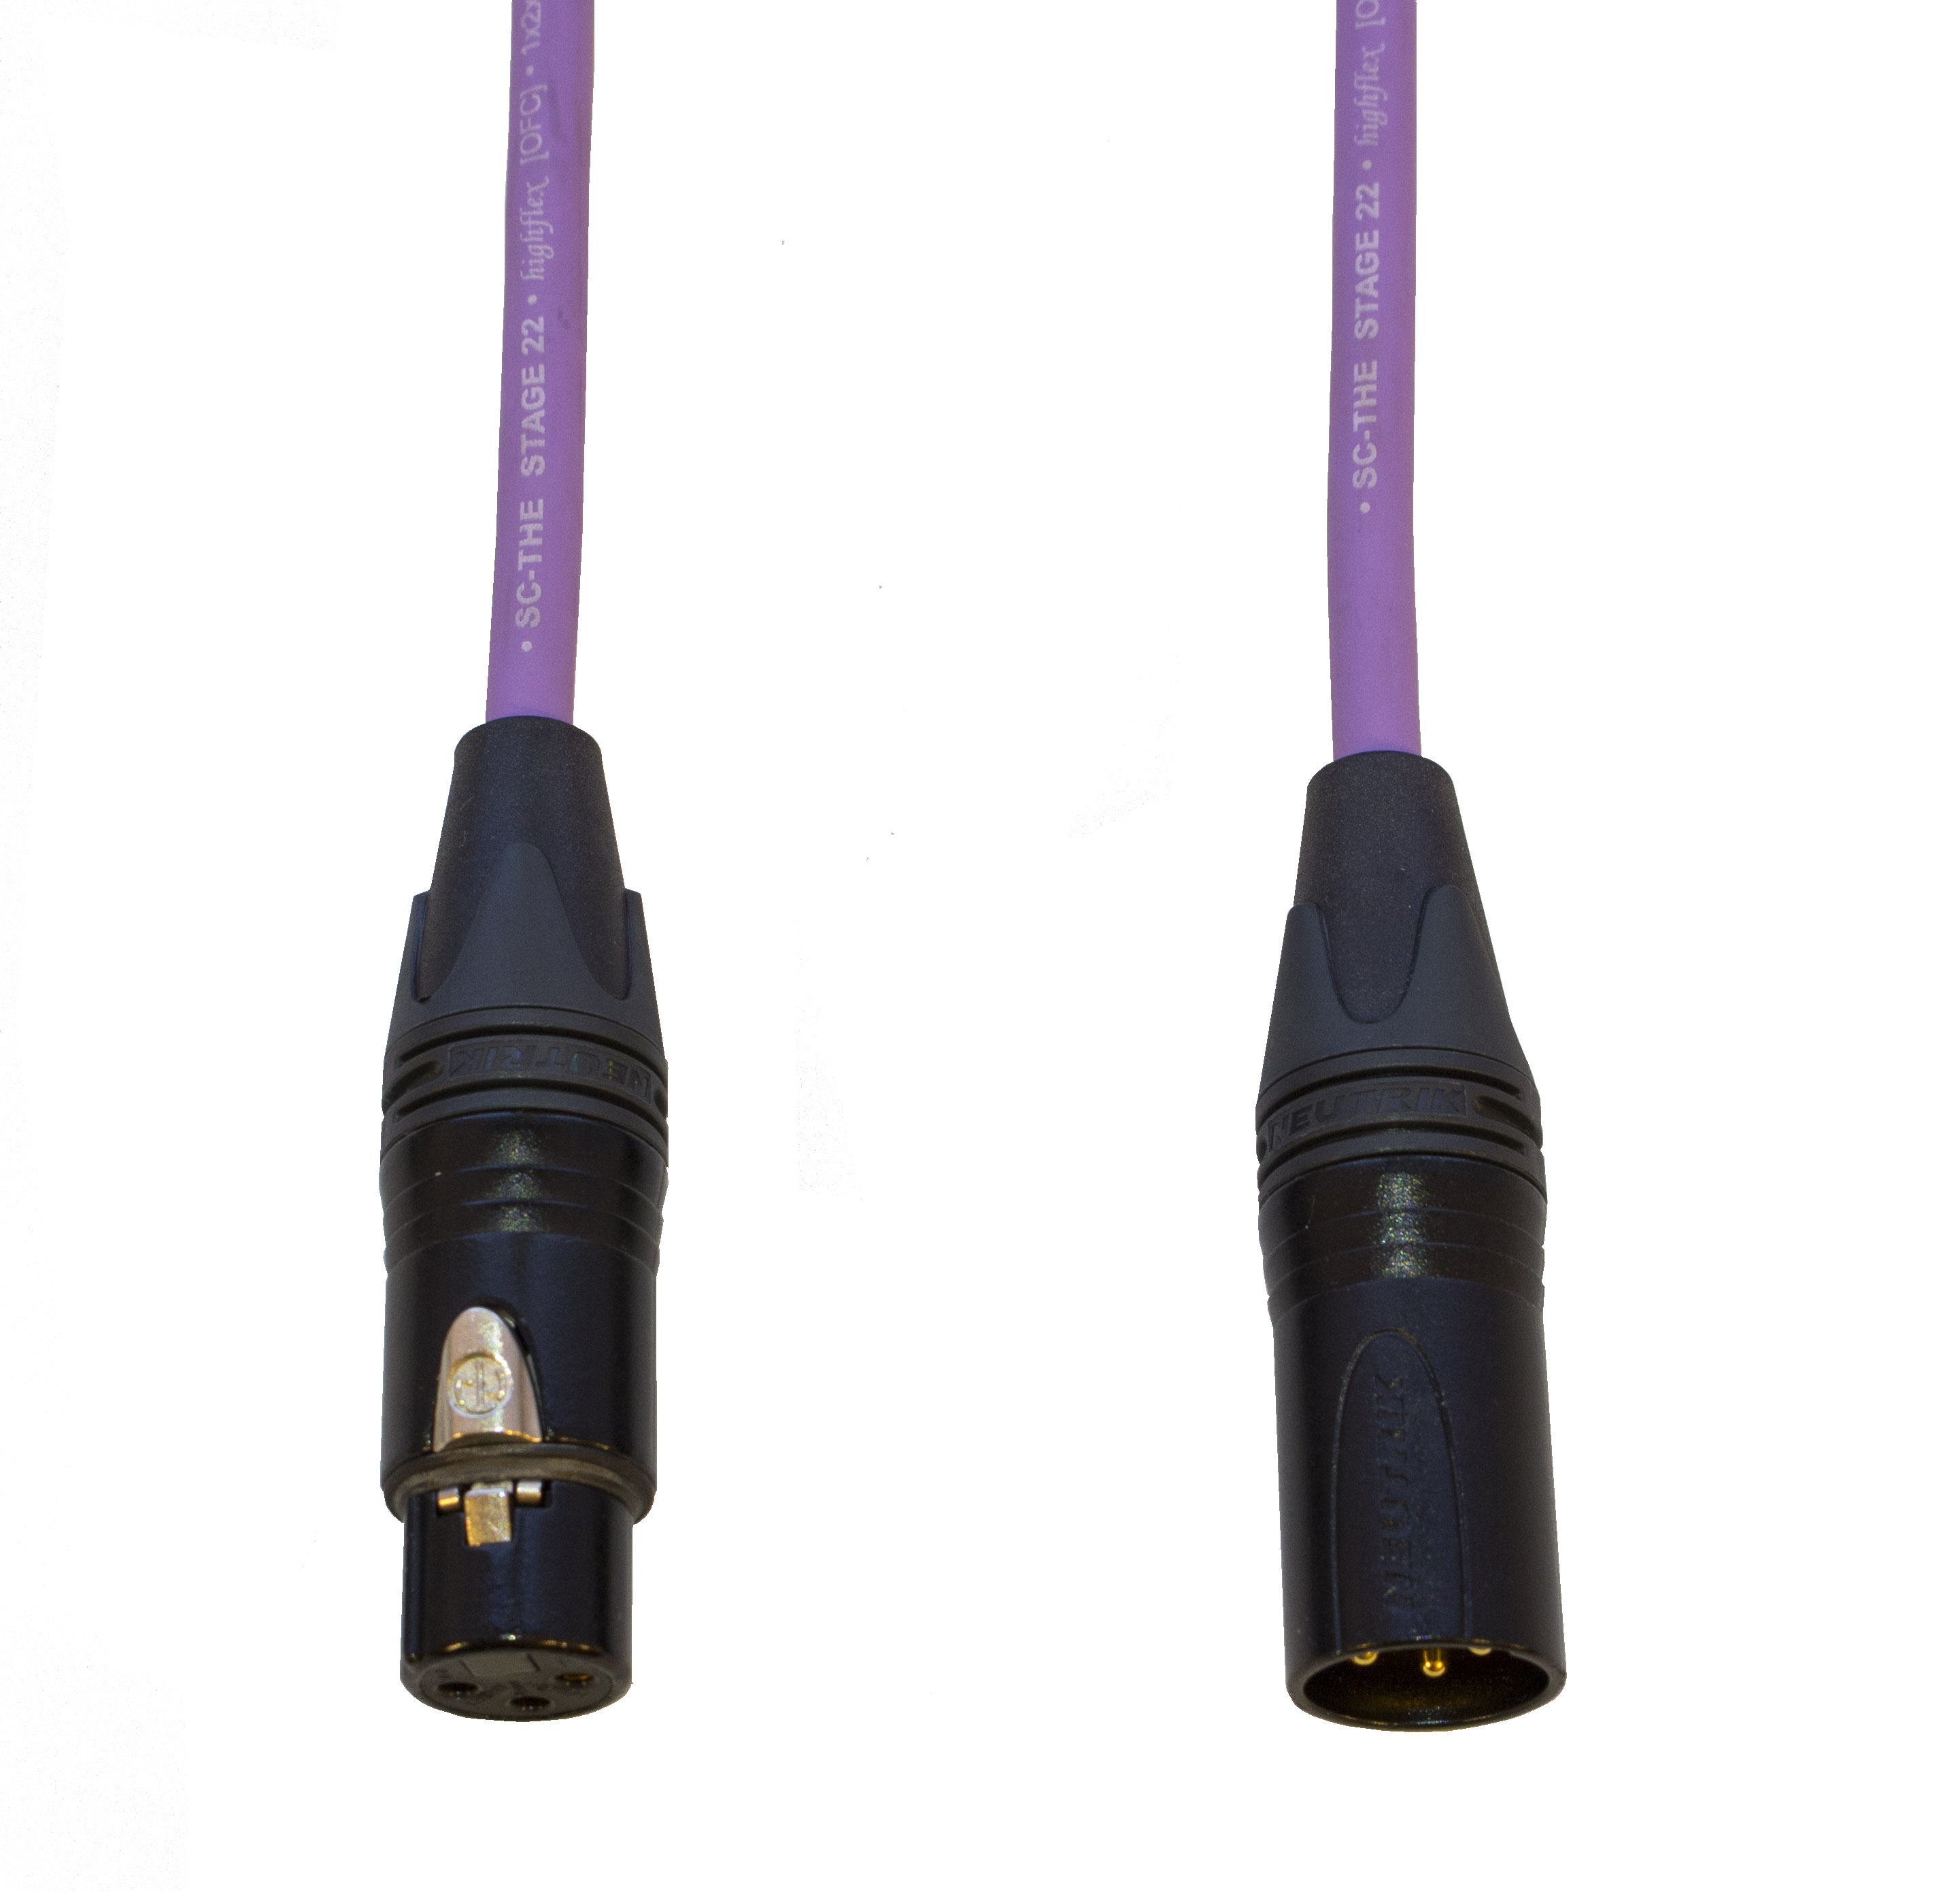 Audiokabel XLR konektor Neutrik poz. male/female  3 m, Sommer, fialový